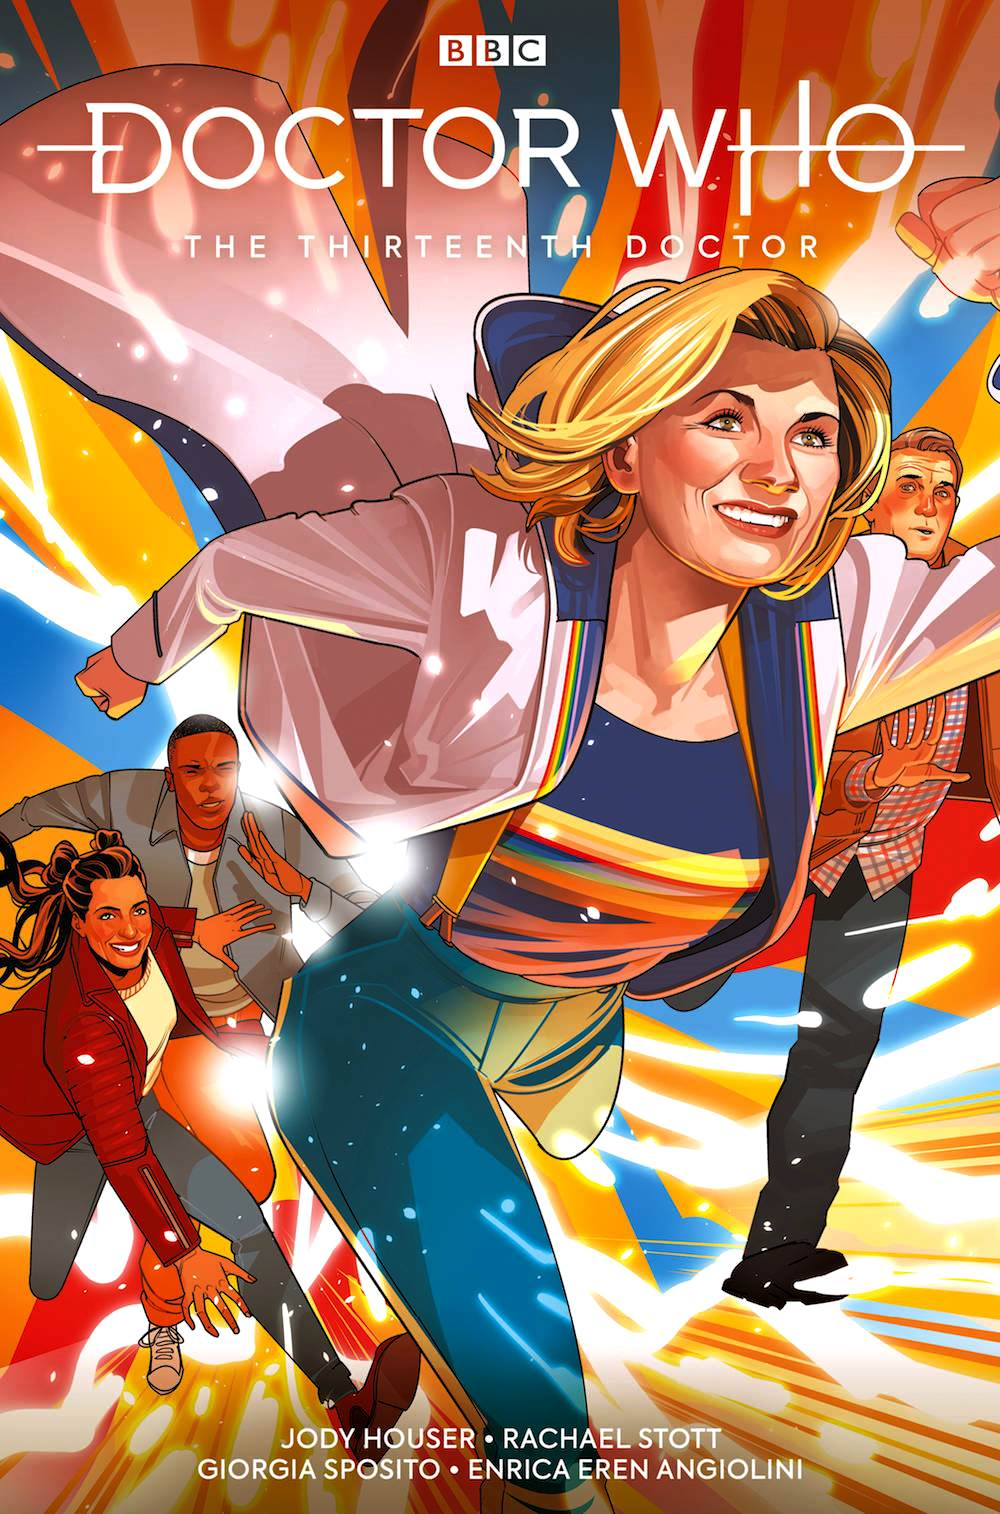 Doctor Who: The Thirteenth Doctor Volume 1 - A New Beginning